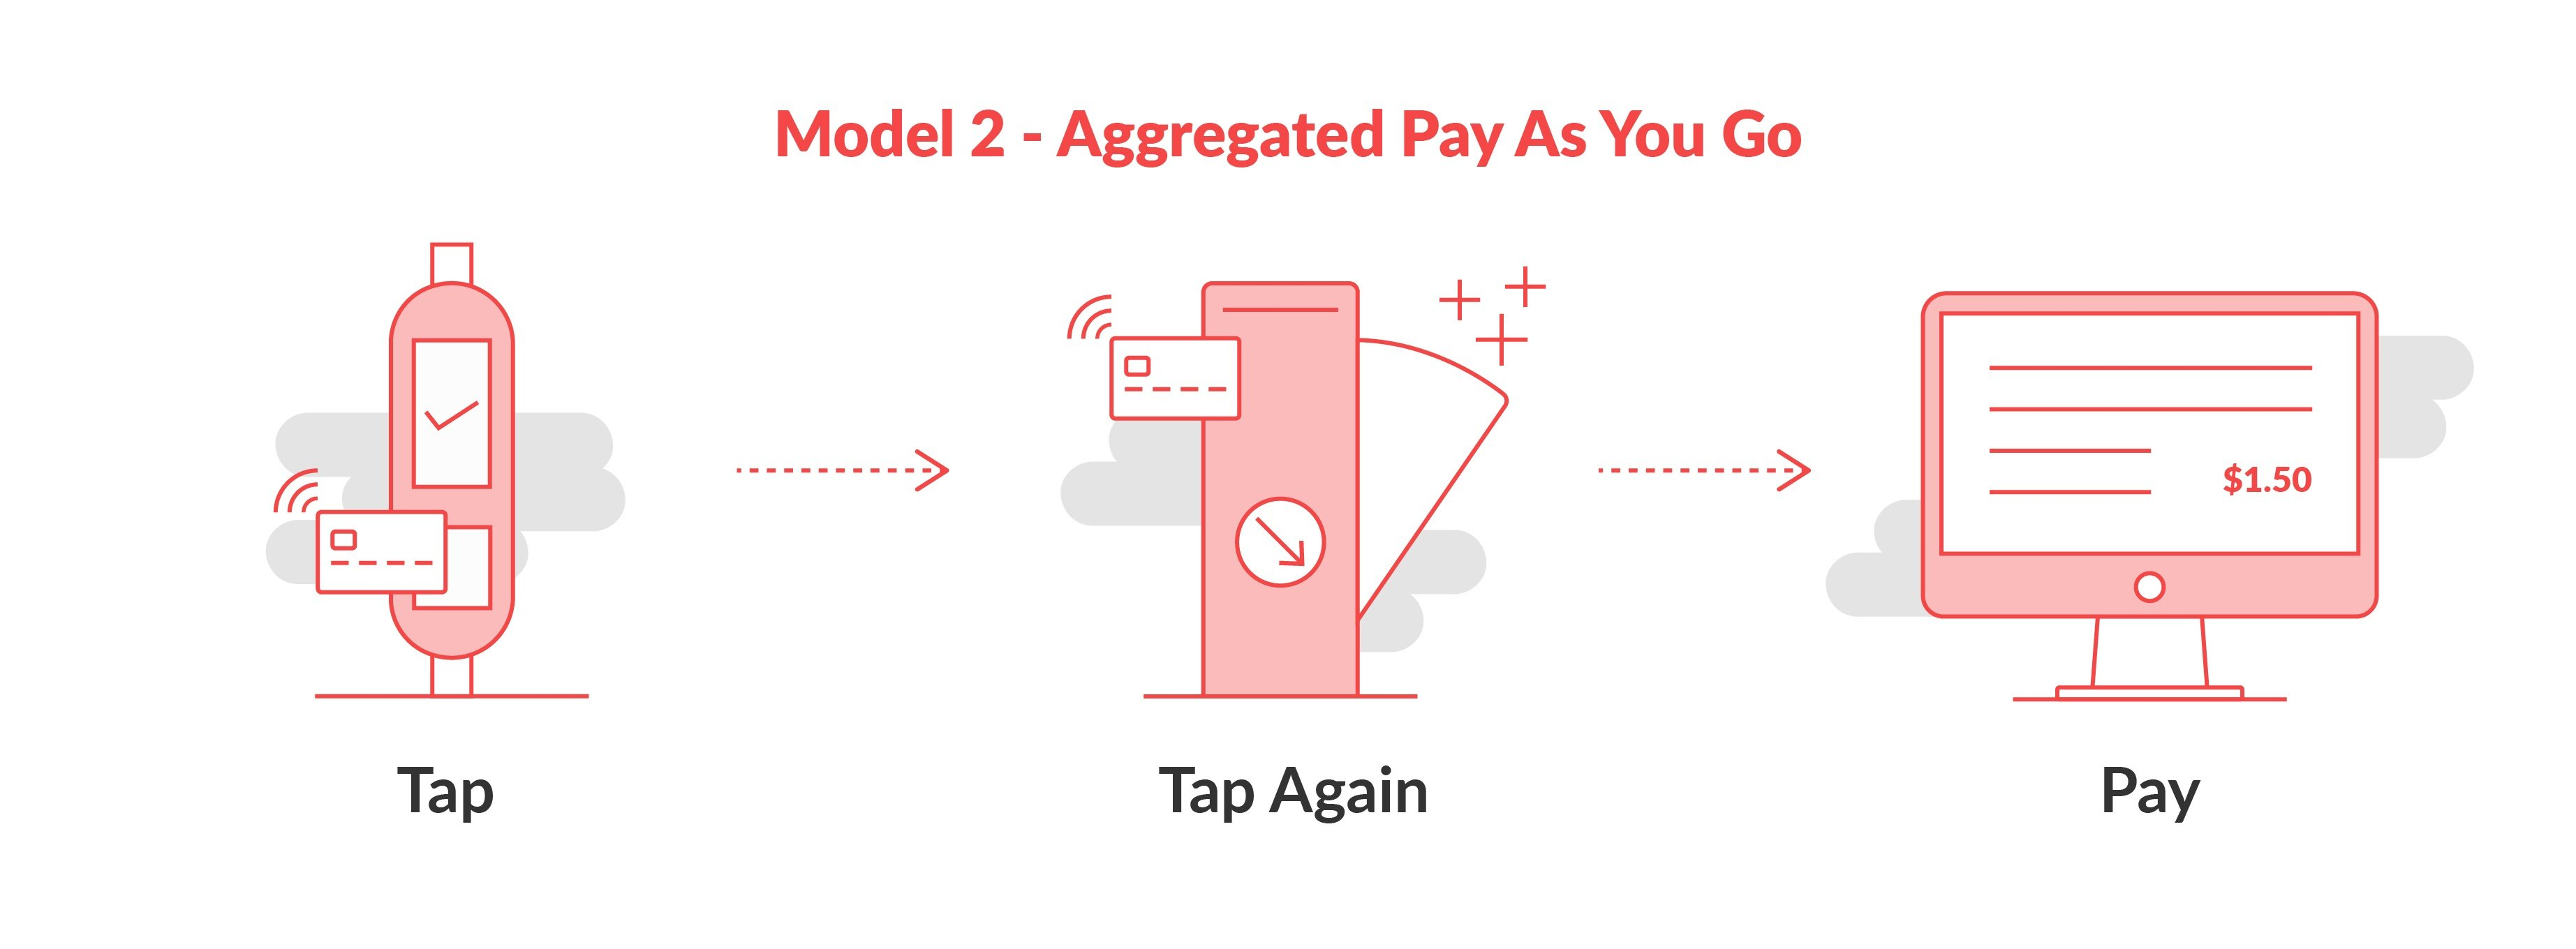 model-2-aggregated-pay-as-you-go